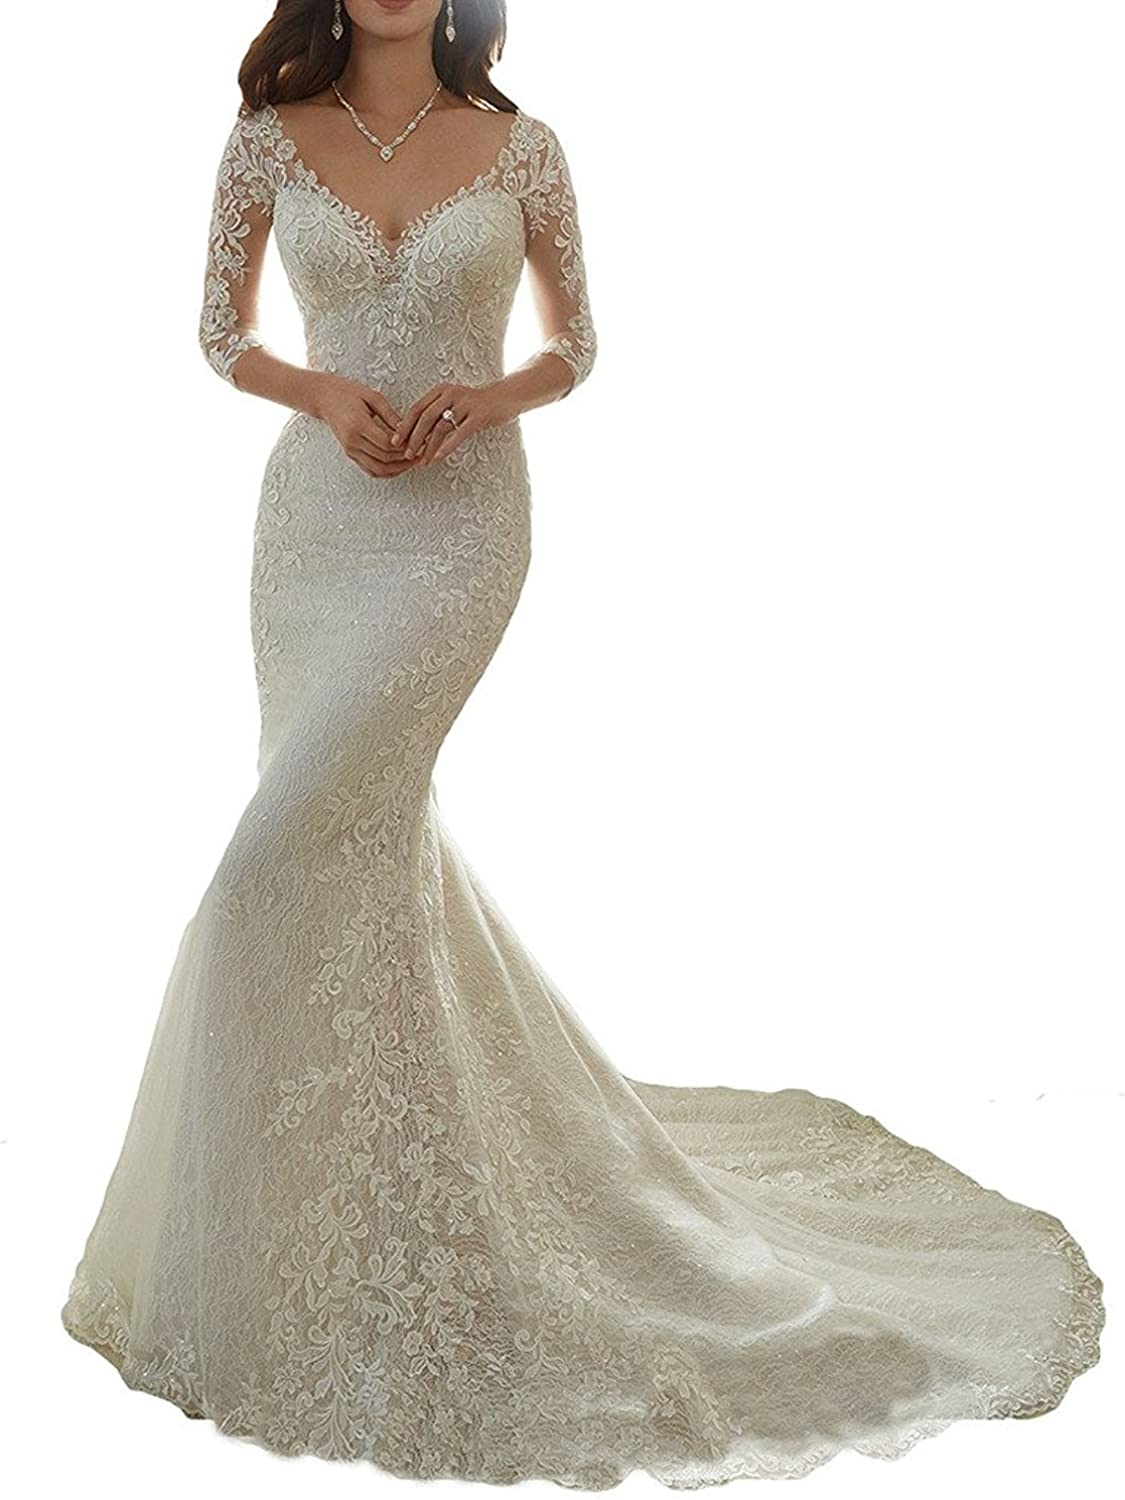 Fannybrides Flower Appliques Mermaid Lace Wedding Dresses Bridal Evening Gowns